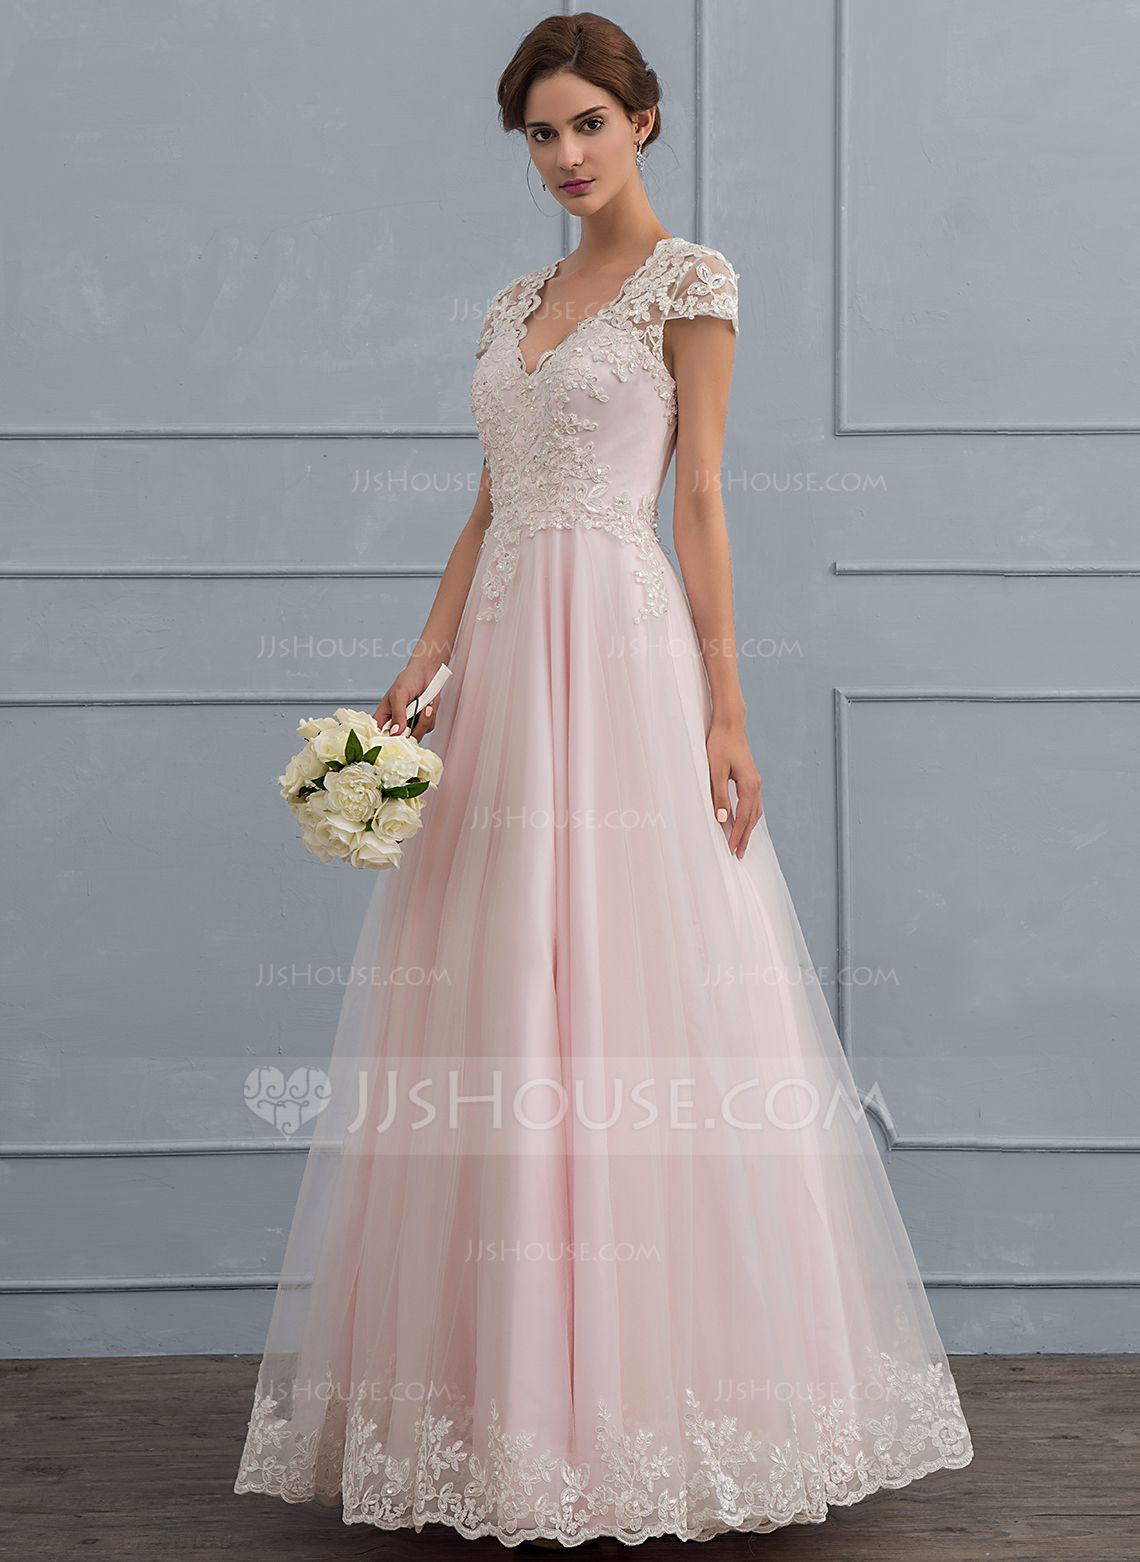 Us 188 00 Ball Gown Princess V Neck Floor Length Tulle Wedding Dress With Beading Sequins Jj S House Short Sleeve Wedding Dress Bow Wedding Dress Tulle Wedding Dress